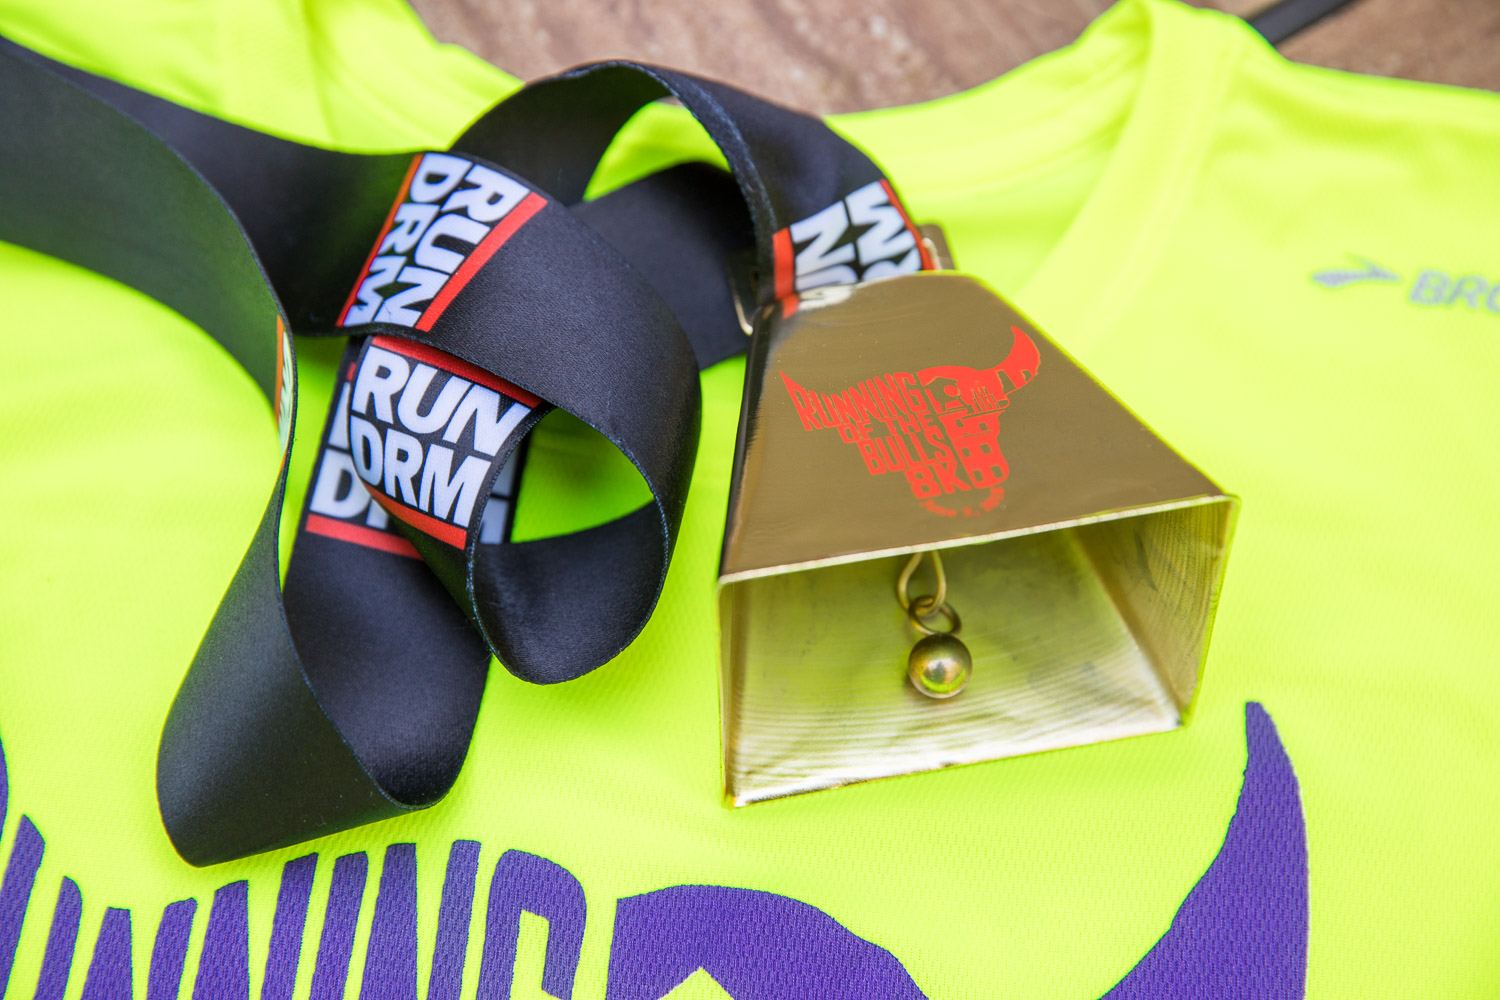 Running of the Bulls 8K 2018 race medal